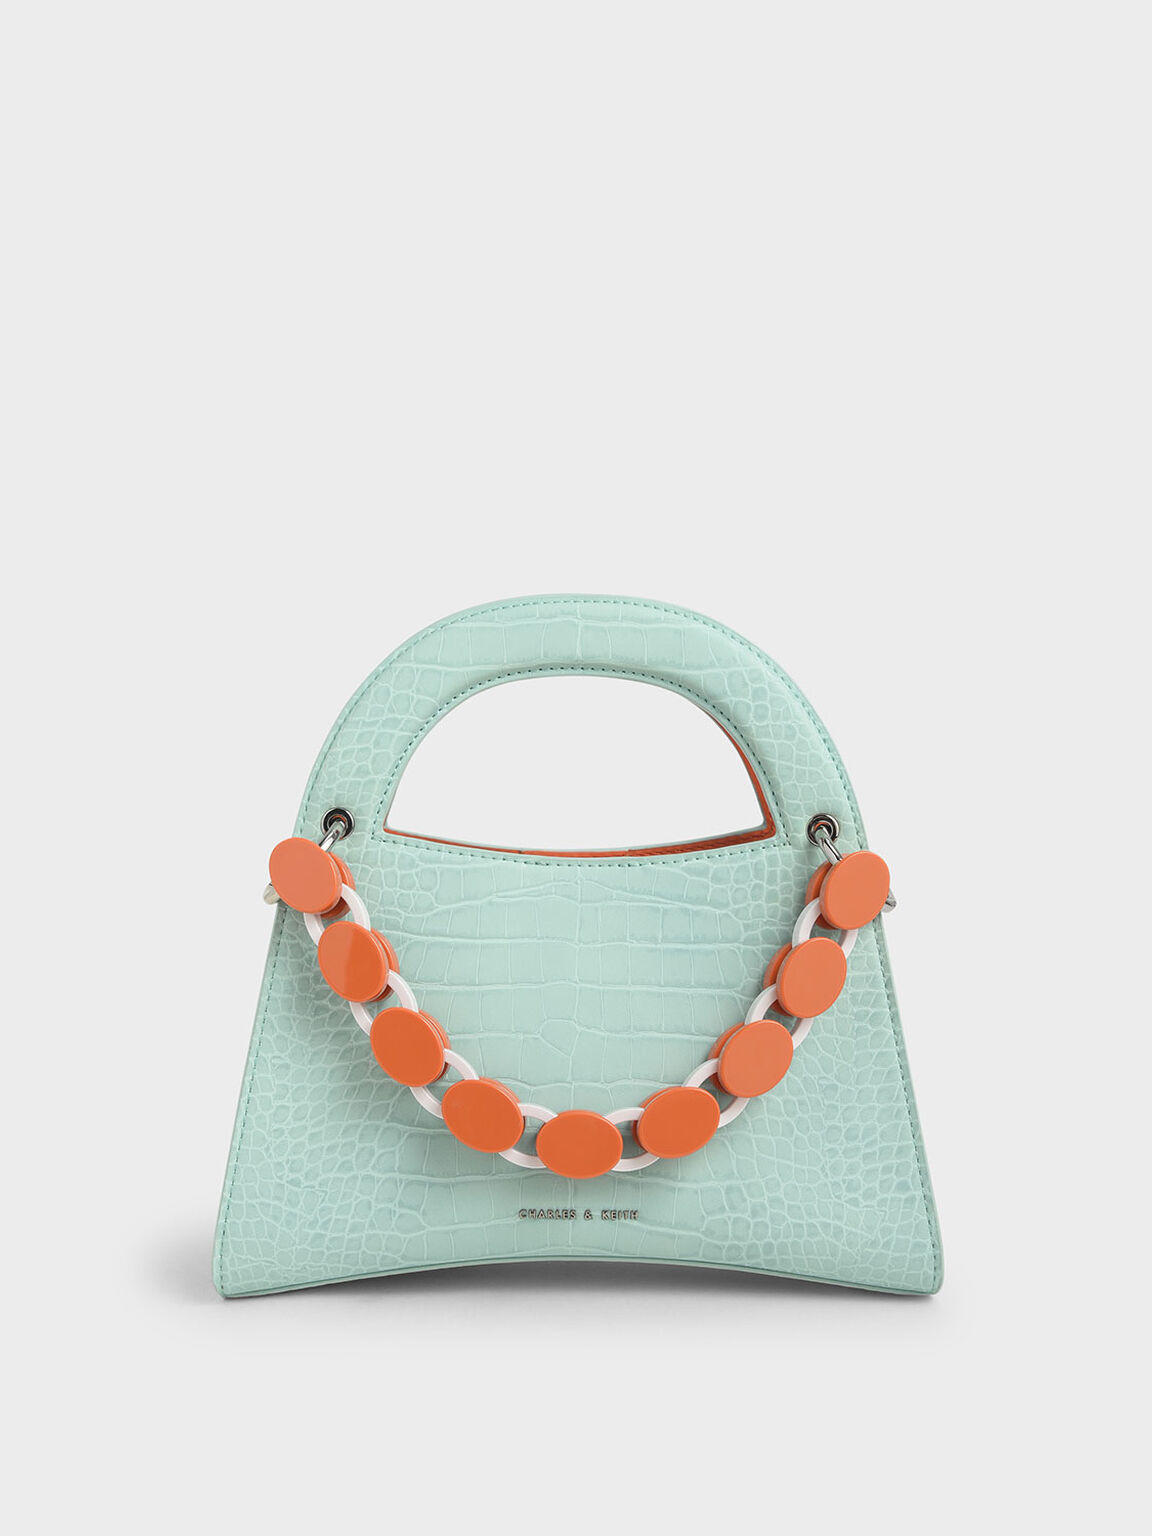 Croc-Effect Acrylic Top Handle Sculptural Bag, Mint Blue, hi-res